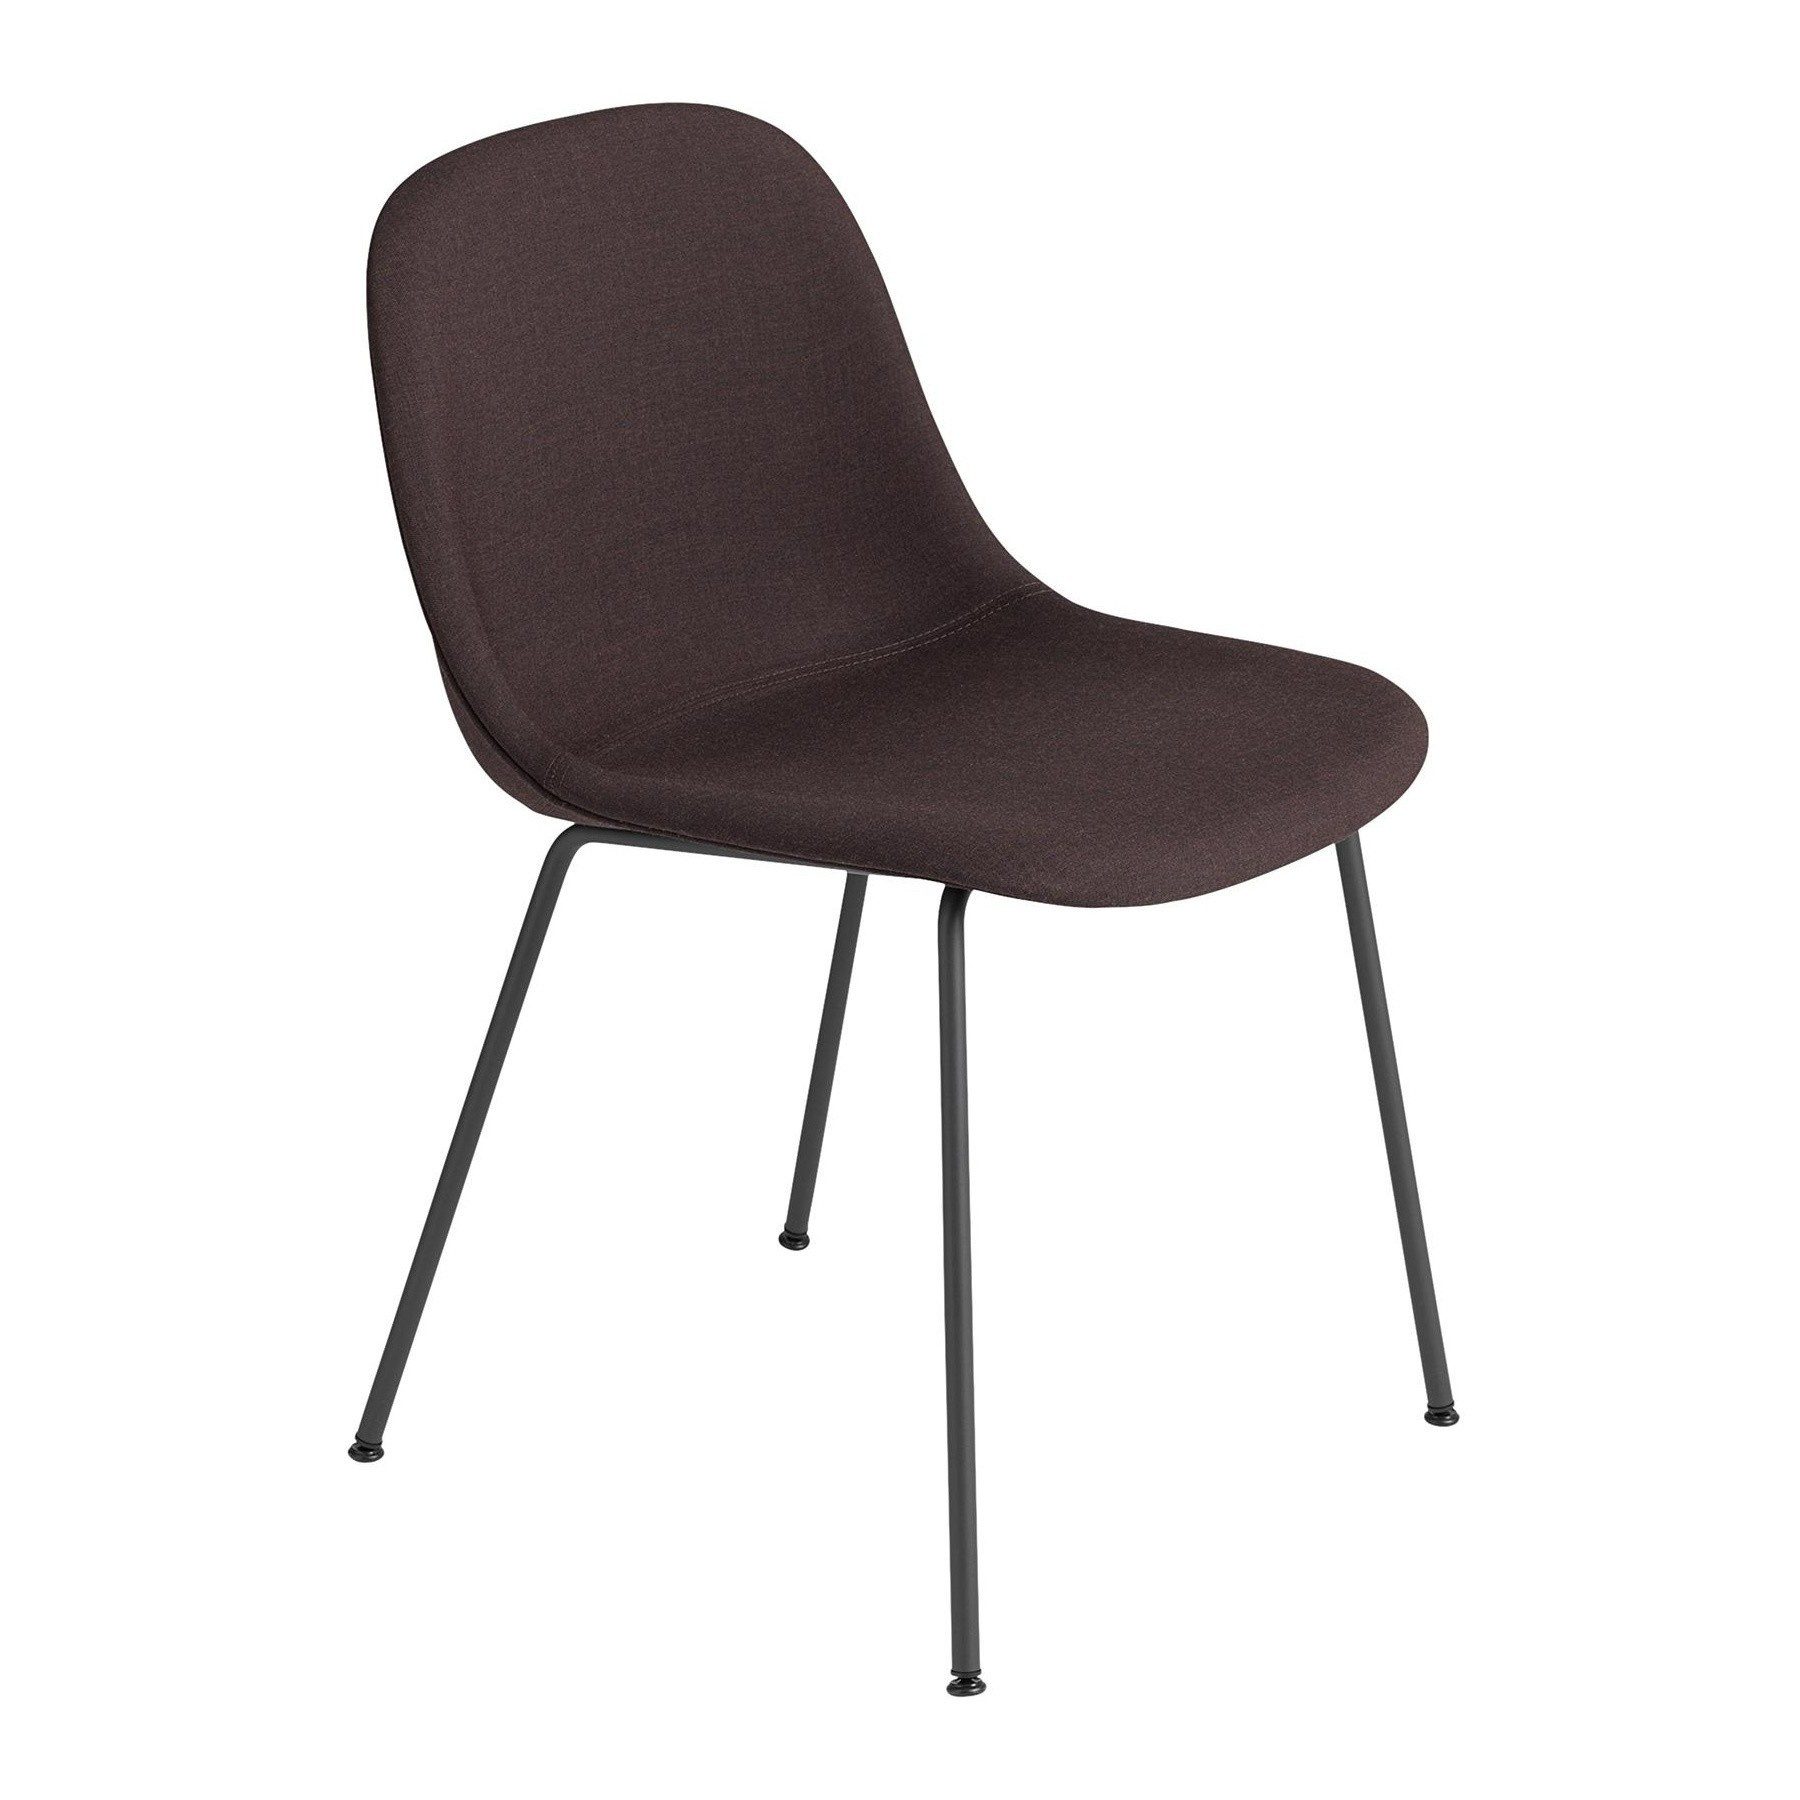 Muuto FIBER SIDE CHAIR / TUBE BASE / TEXTILE SHELL - Remix - All Colors